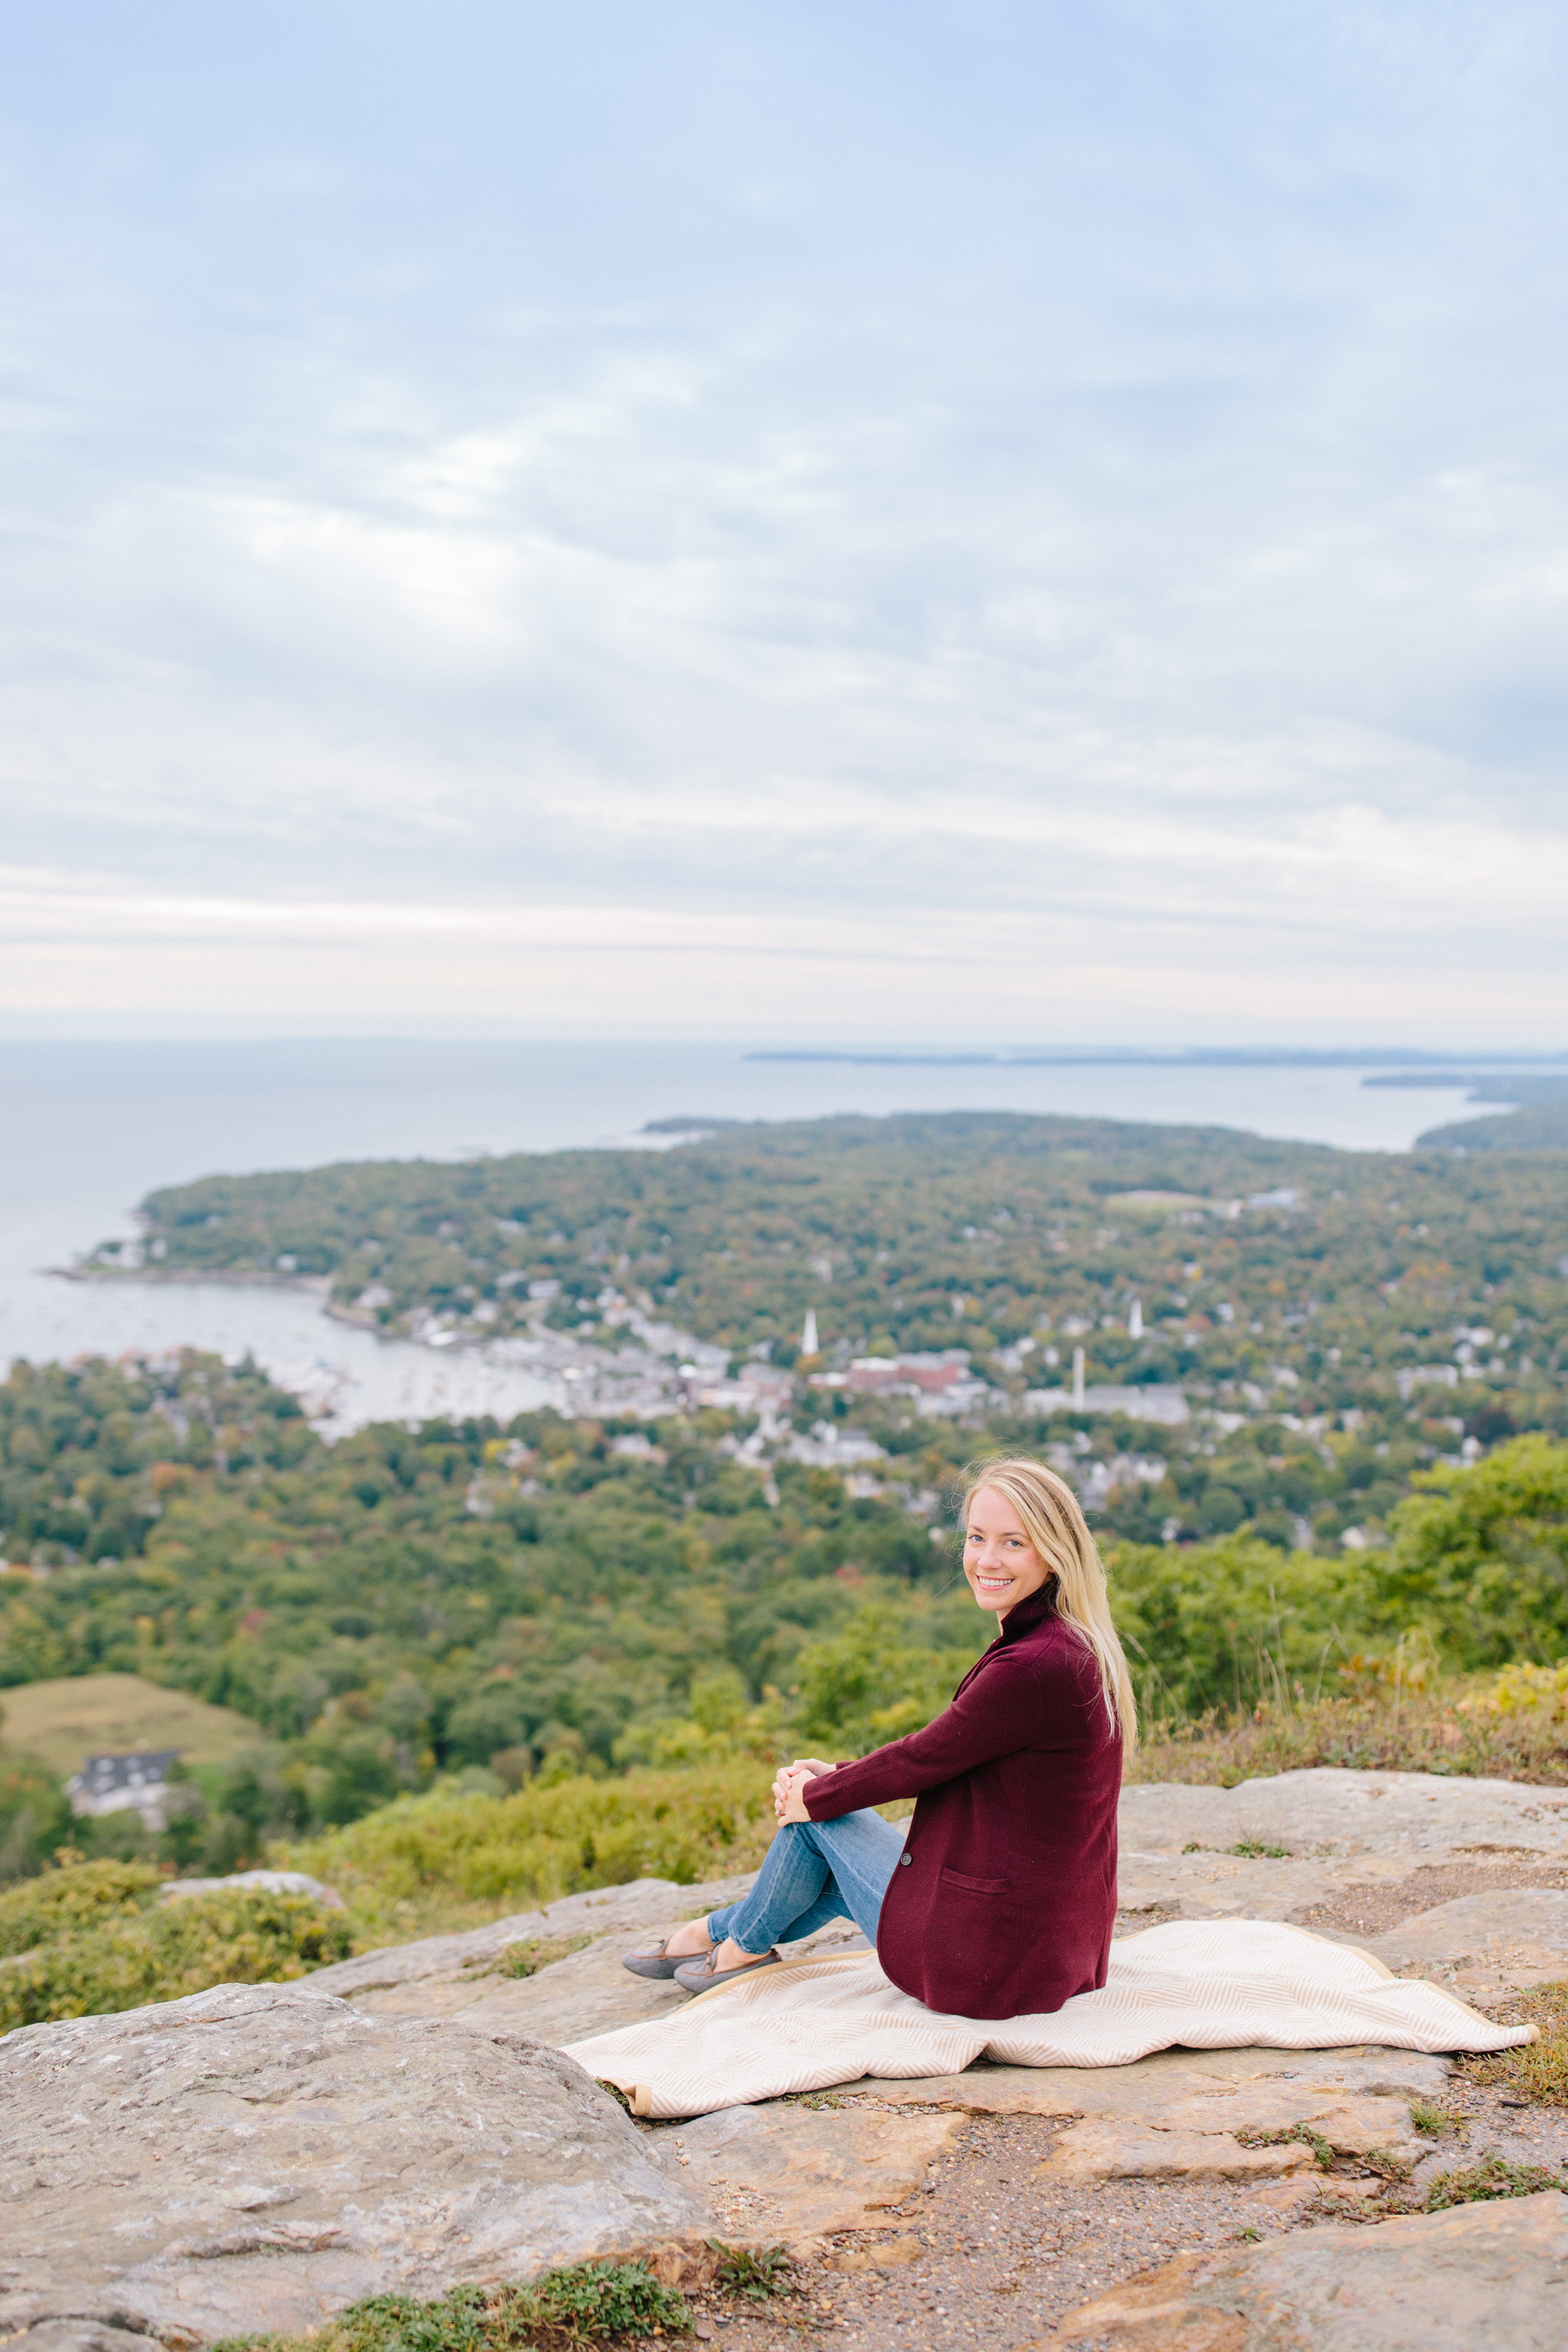 Maine Travel Guide: where to go for the best views in Maine // Rhyme & Reason